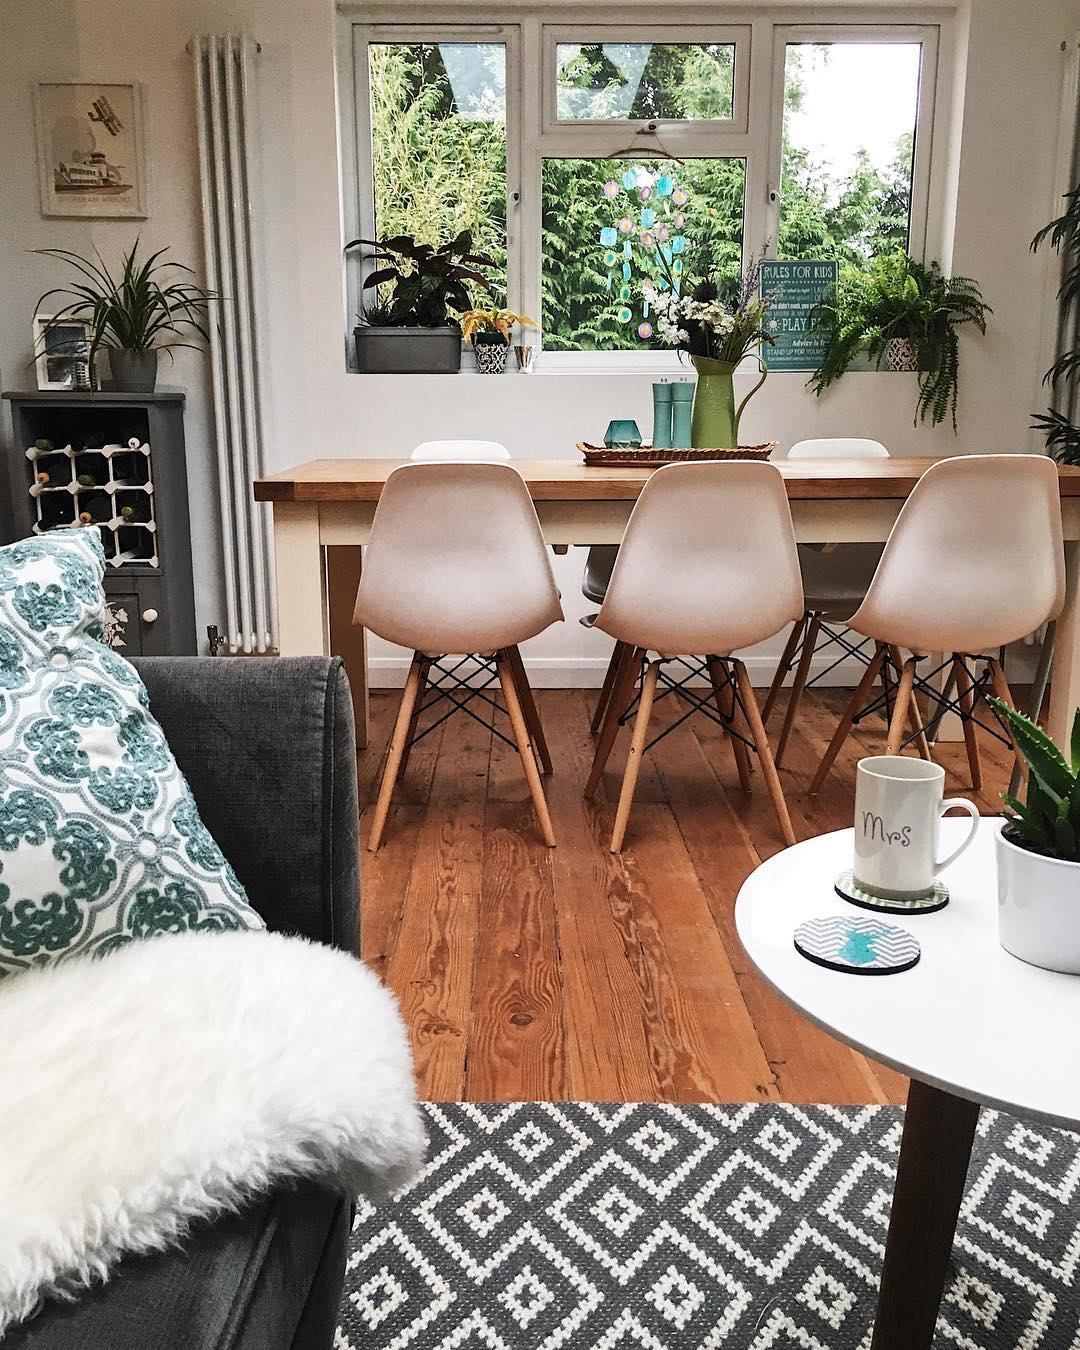 Clean dining room: Want to make cleaning your home an absolute breeze? Try these cleaning hacks from www.lovetohome.co.uk . Photo credit @mjyhomestlyle via Instagram